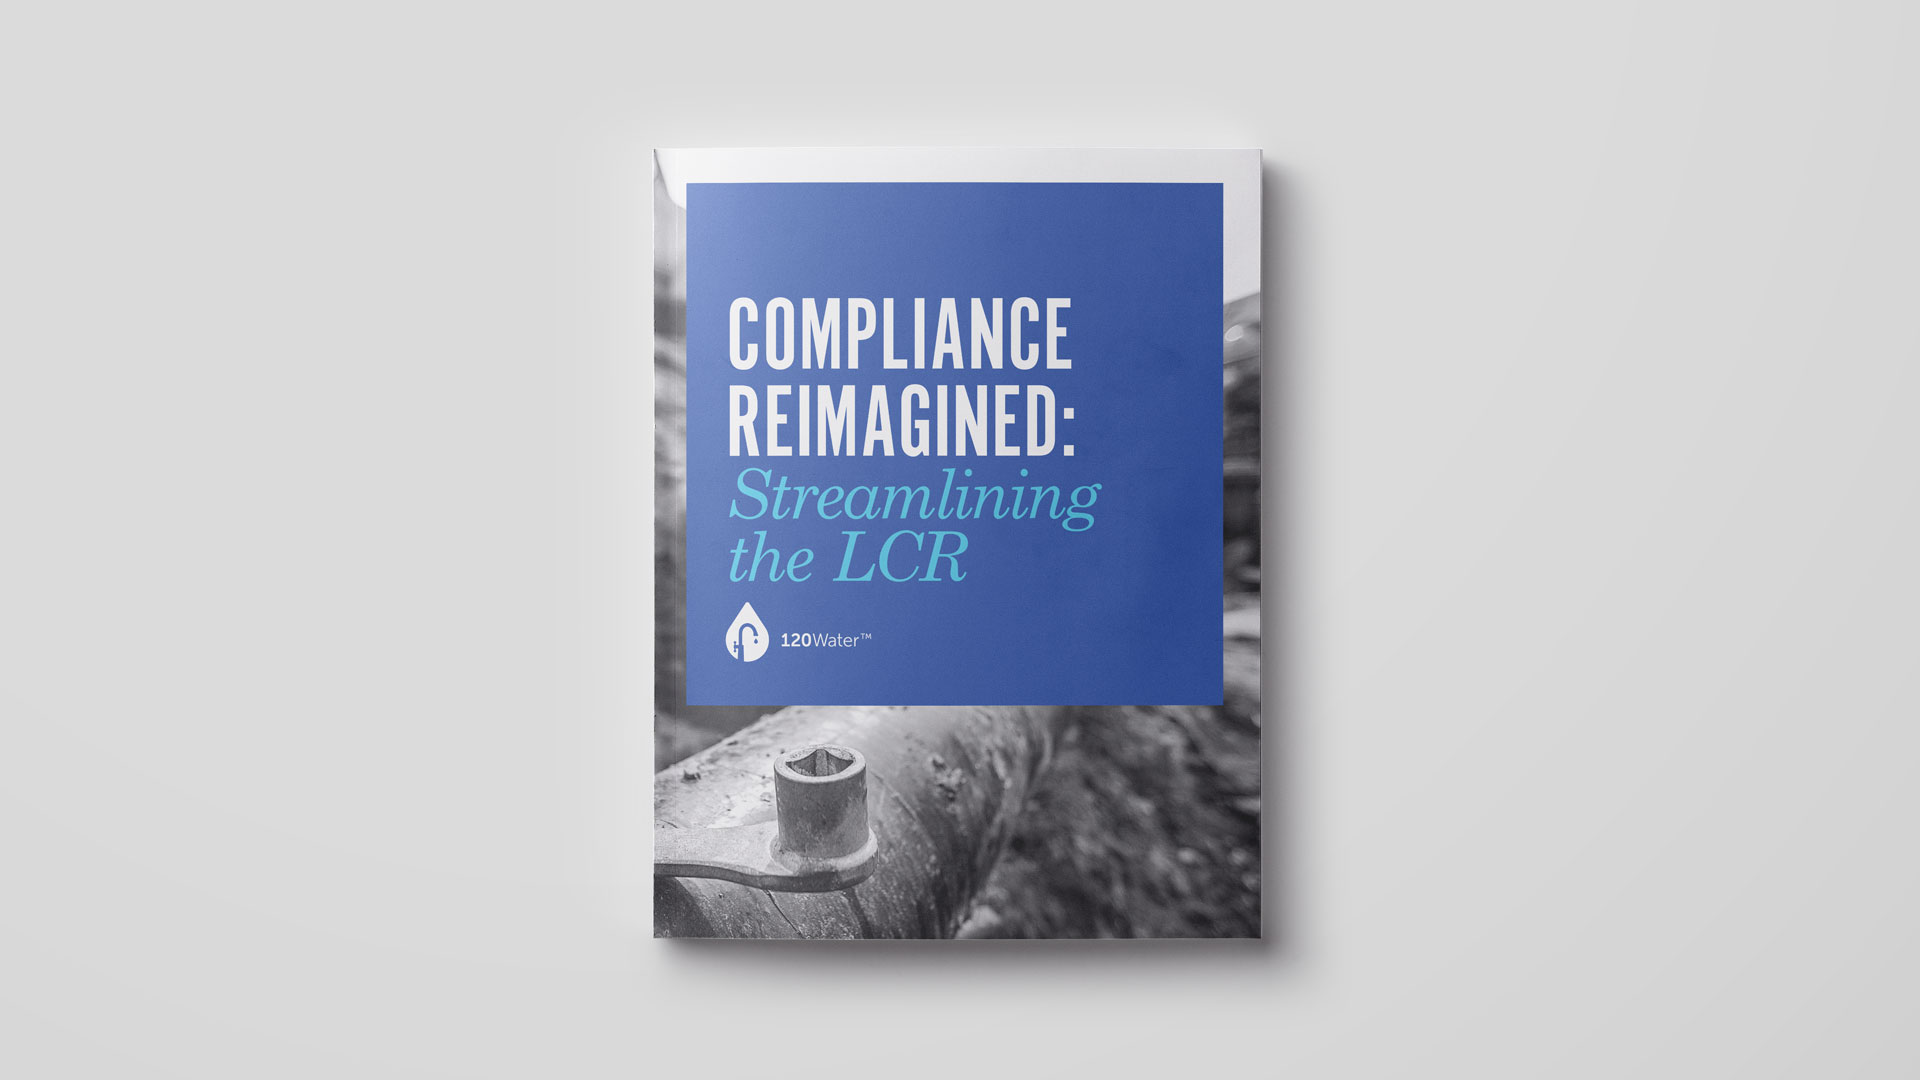 [Guide] Compliance Reimagined: Streamlining the LCR